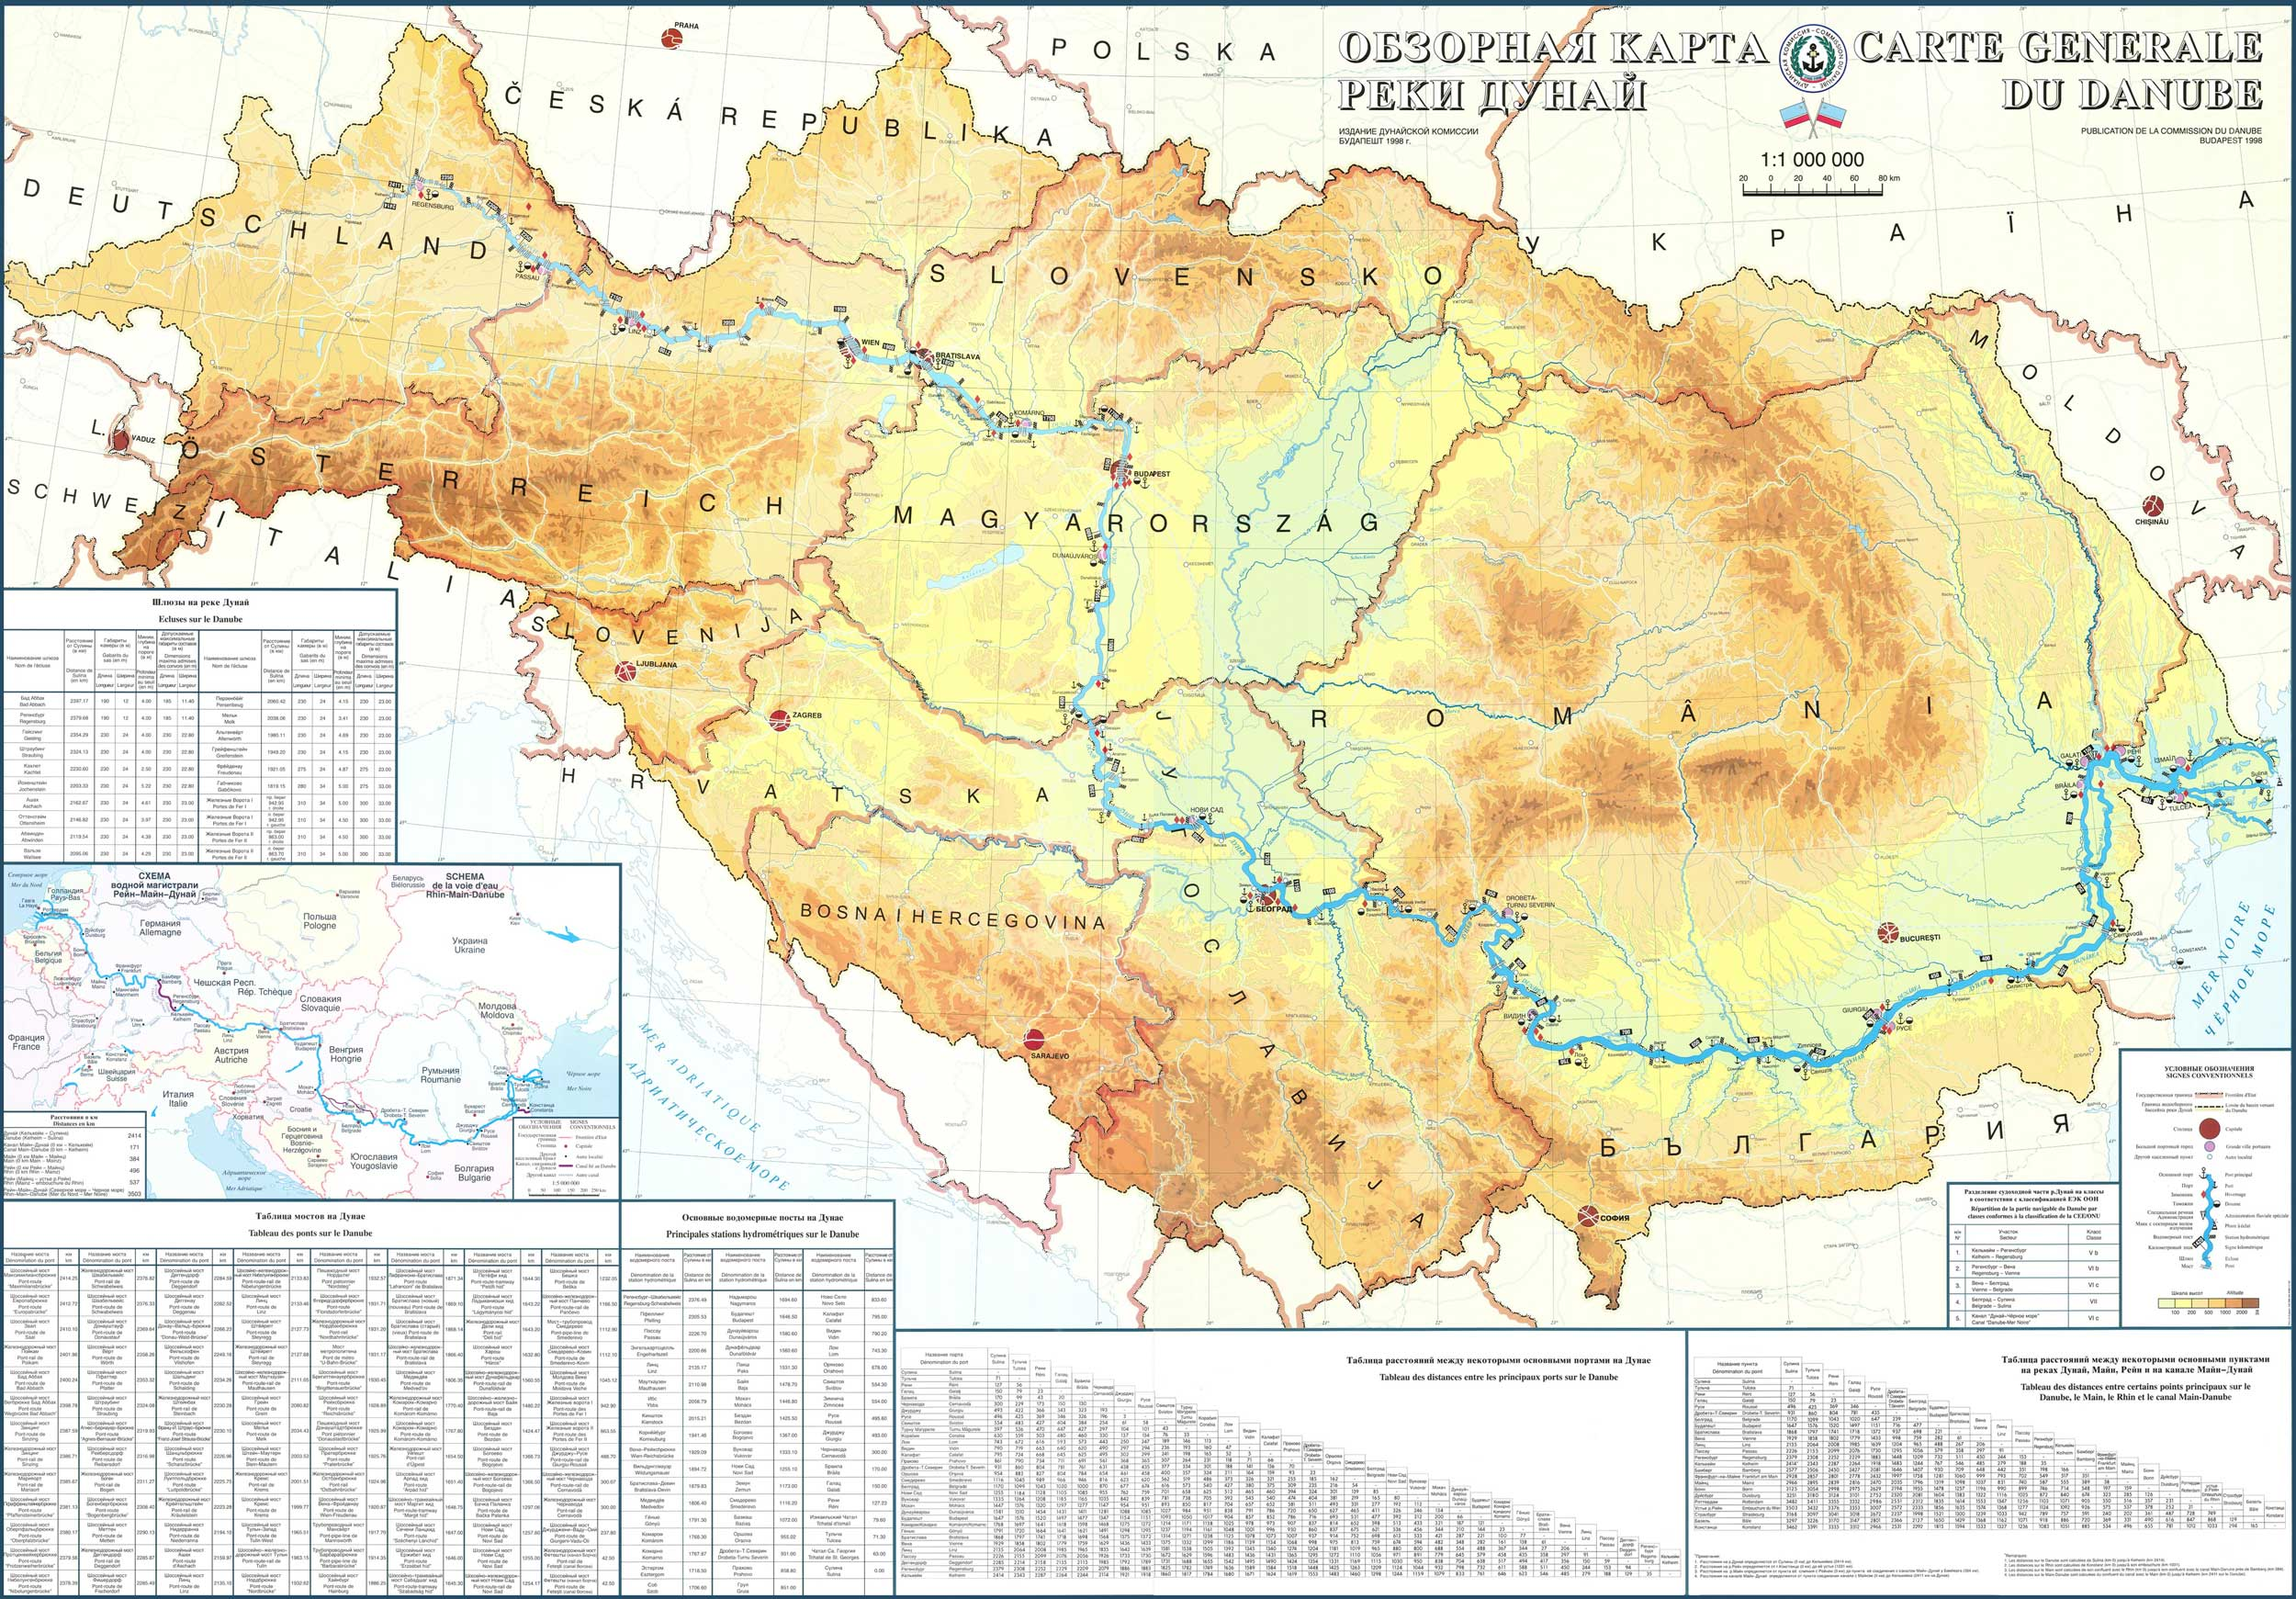 Maps of the Danube - Danube Commission - Donaukommission ... Danube River On Map on greece on map, po river on map, thames river on map, yangtze river on map, elbe river on map, english channel on map, amazon river on map, alps on map, oder river on map, tigris river on map, euphrates river on map, don river on map, dnieper river on map, mosel river on map, ganges river on map, caspian sea on map, rhone river on map, strait of gibraltar on map, seine river on map, indus river on map,